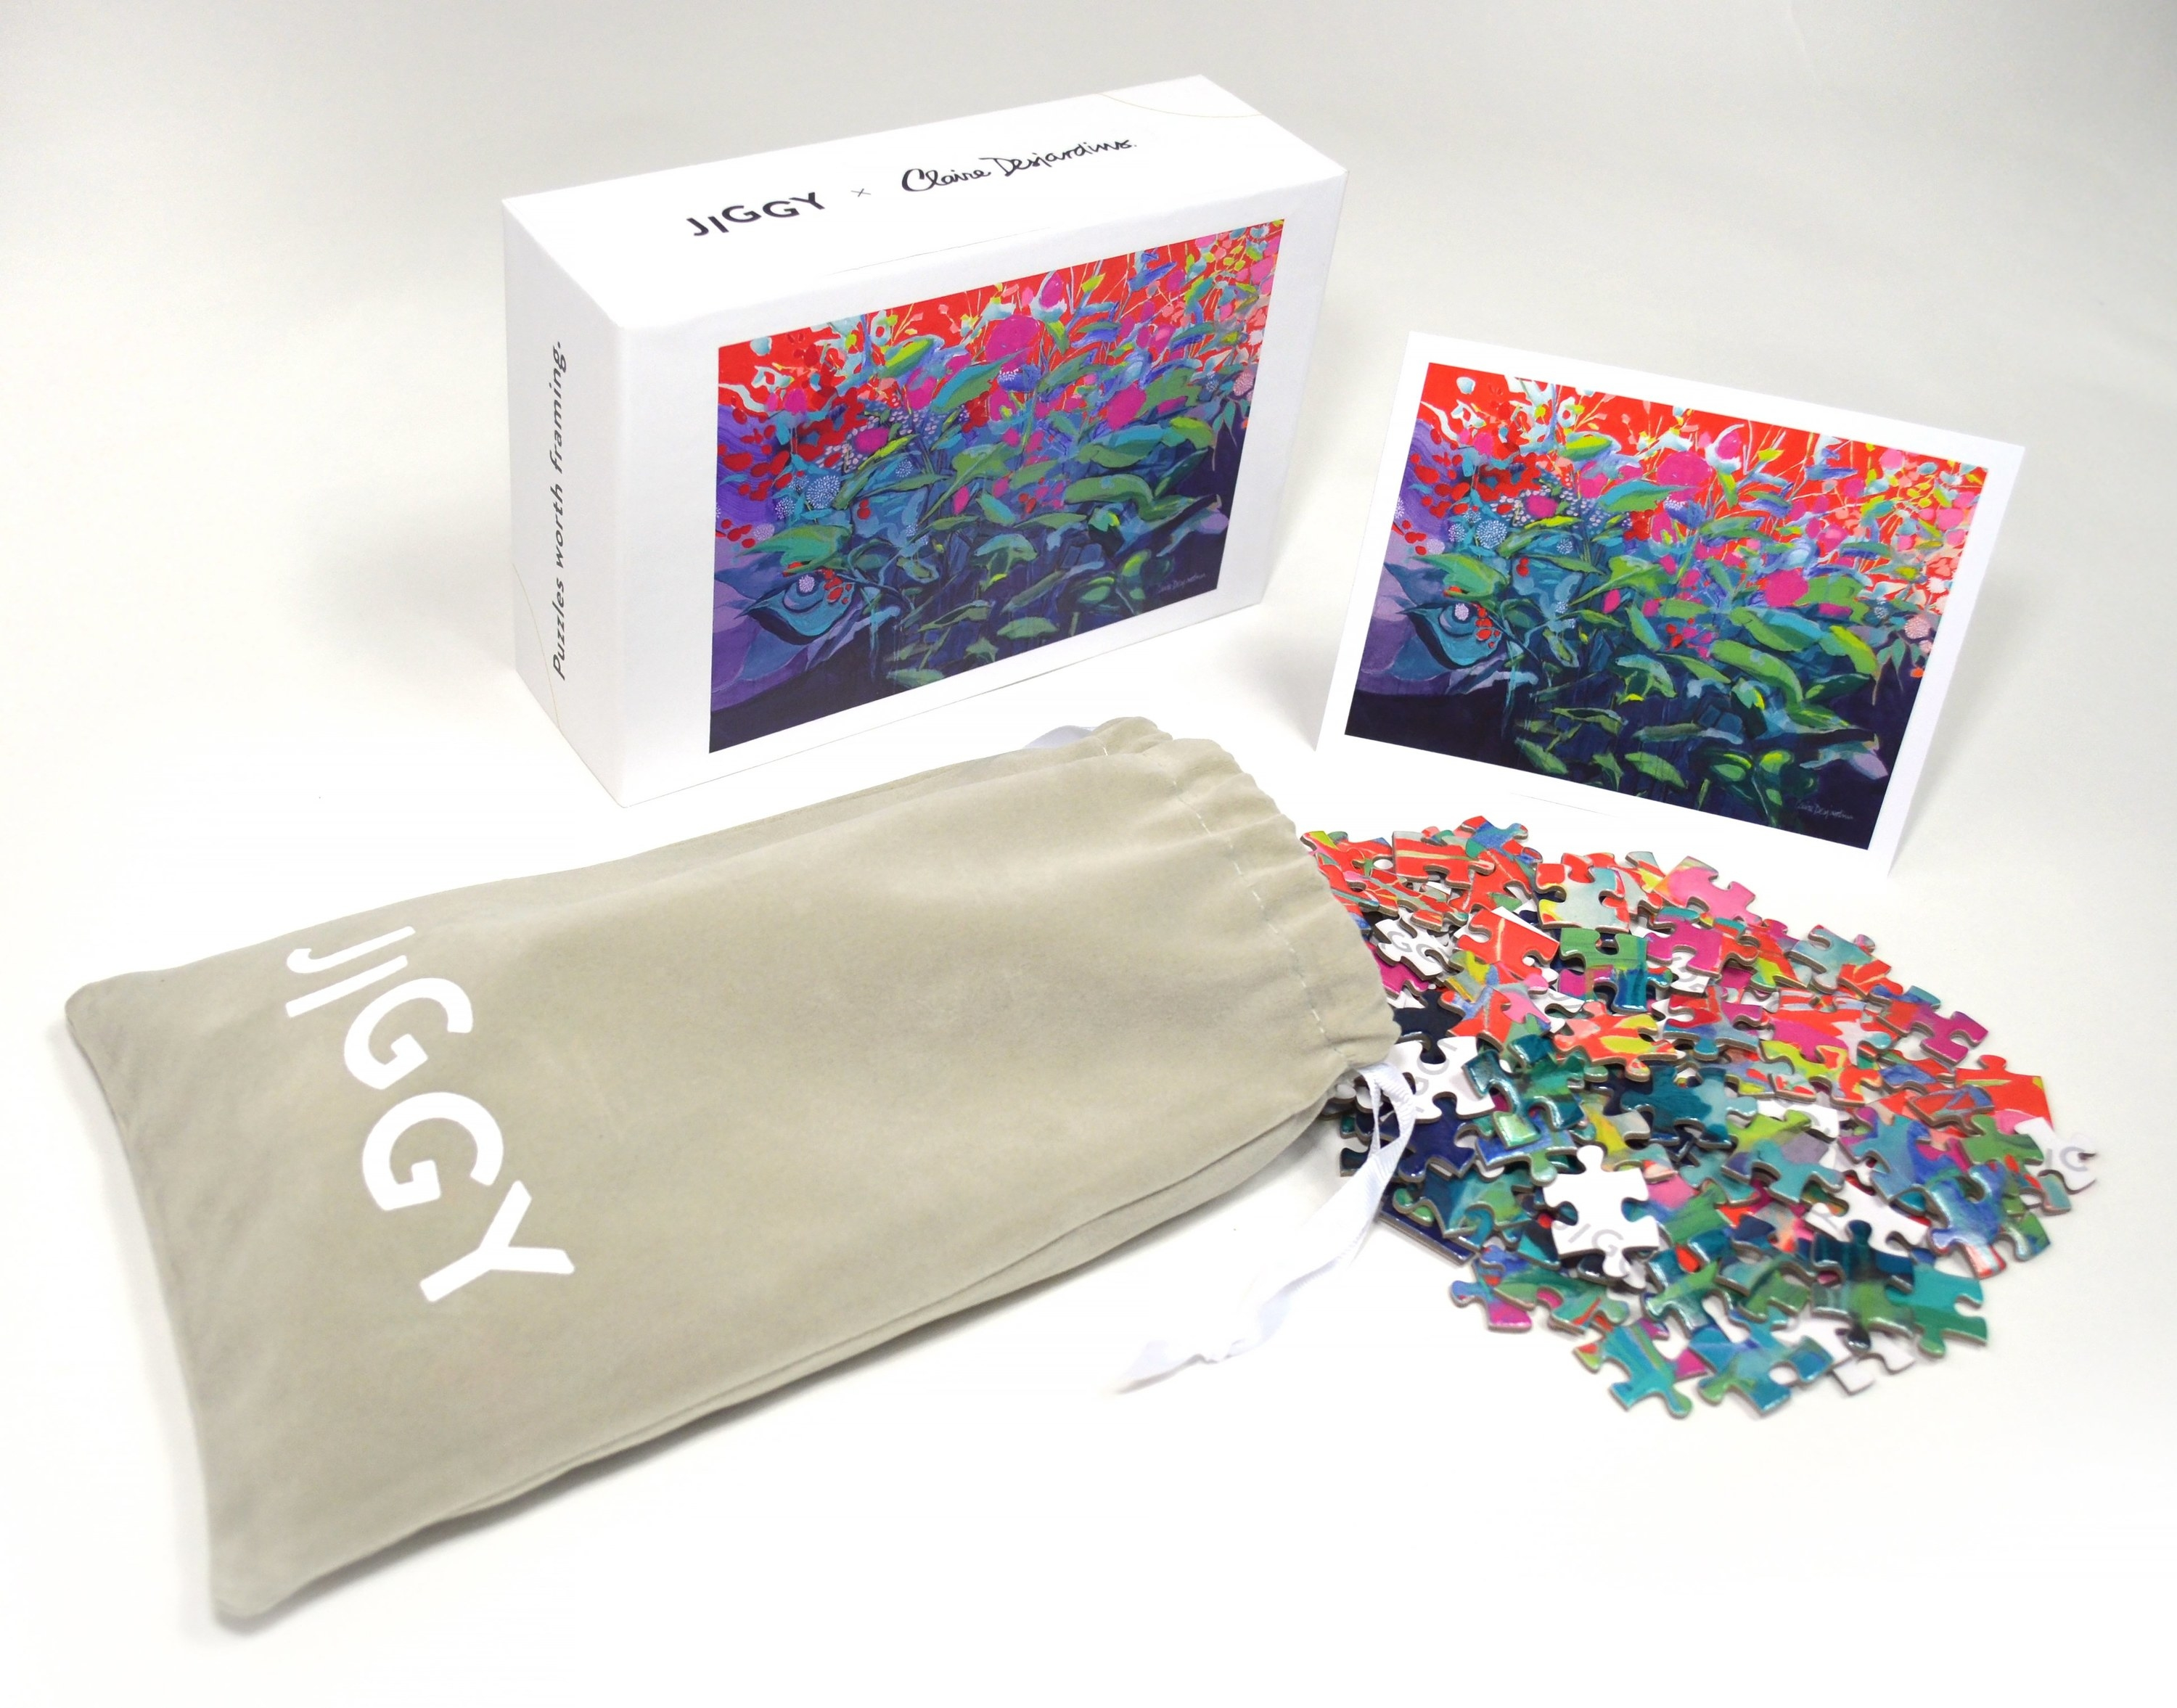 a colorful pile of puzzle pieces next to a pouch and a box showing what the puzzle is